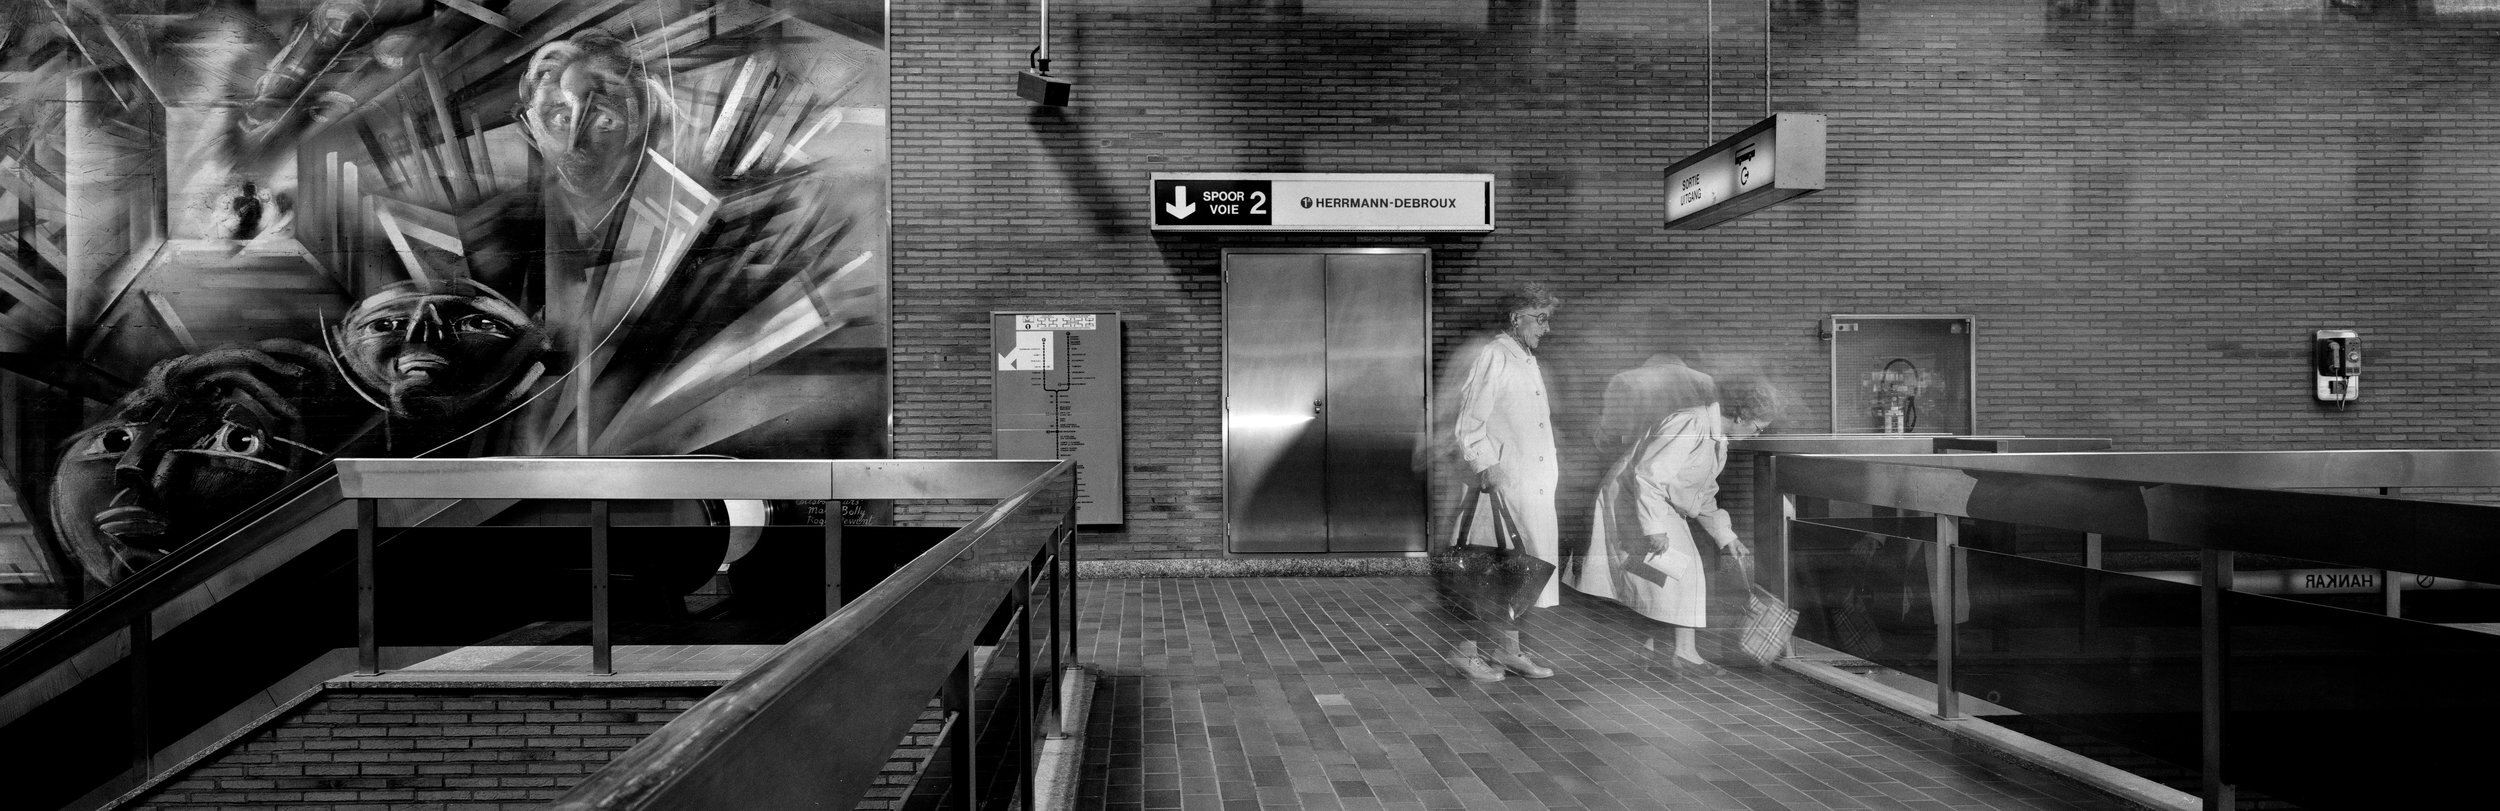 Art in the Brussels subway 1993